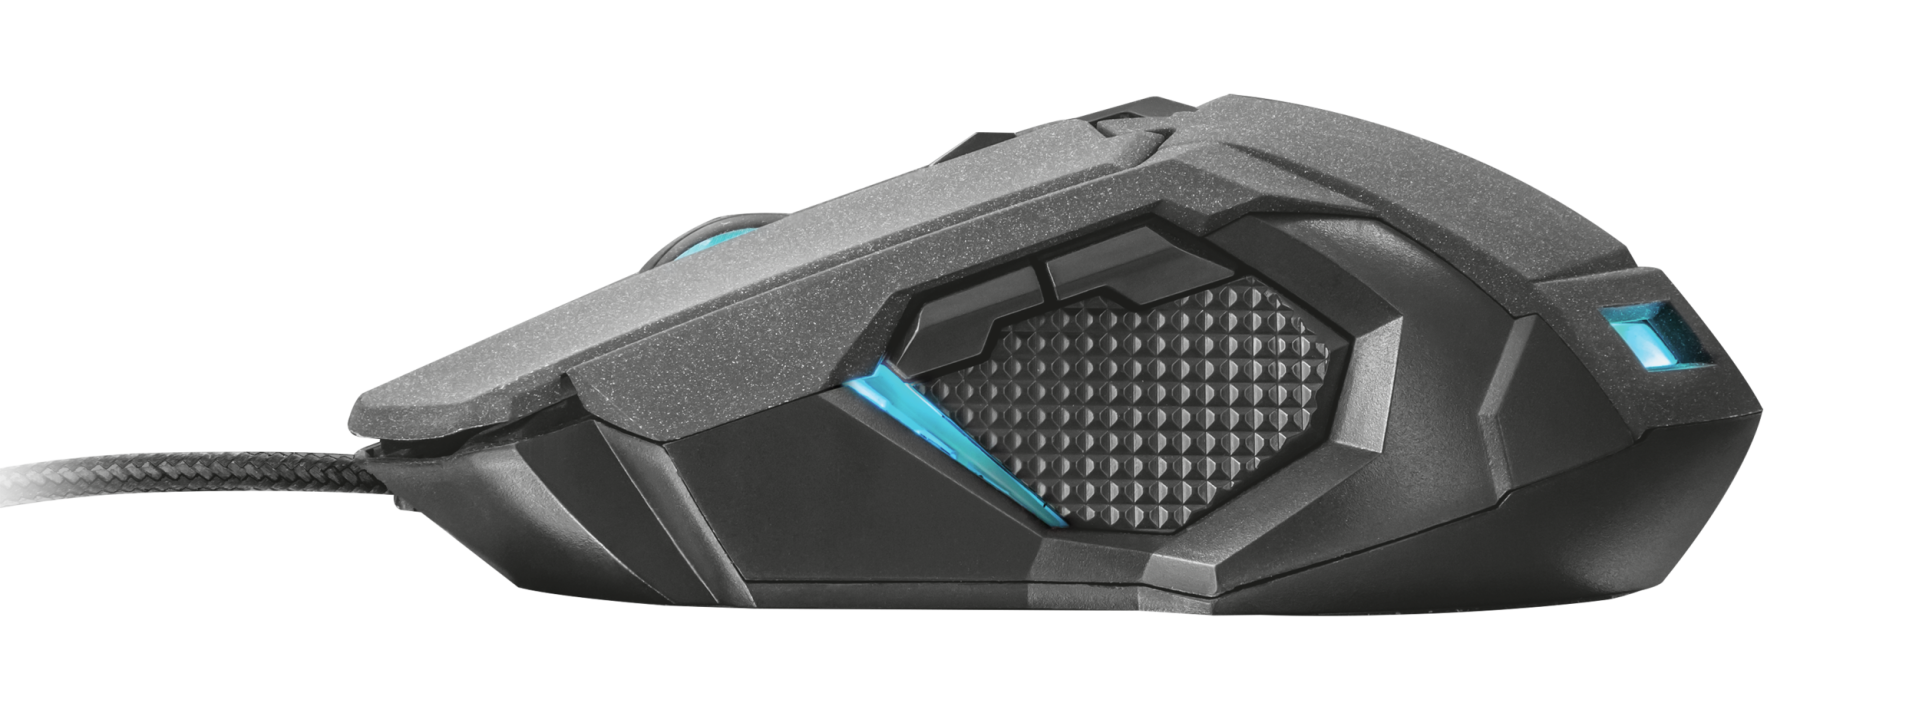 GXT 158 Orna Laser Gaming Mouse-Side